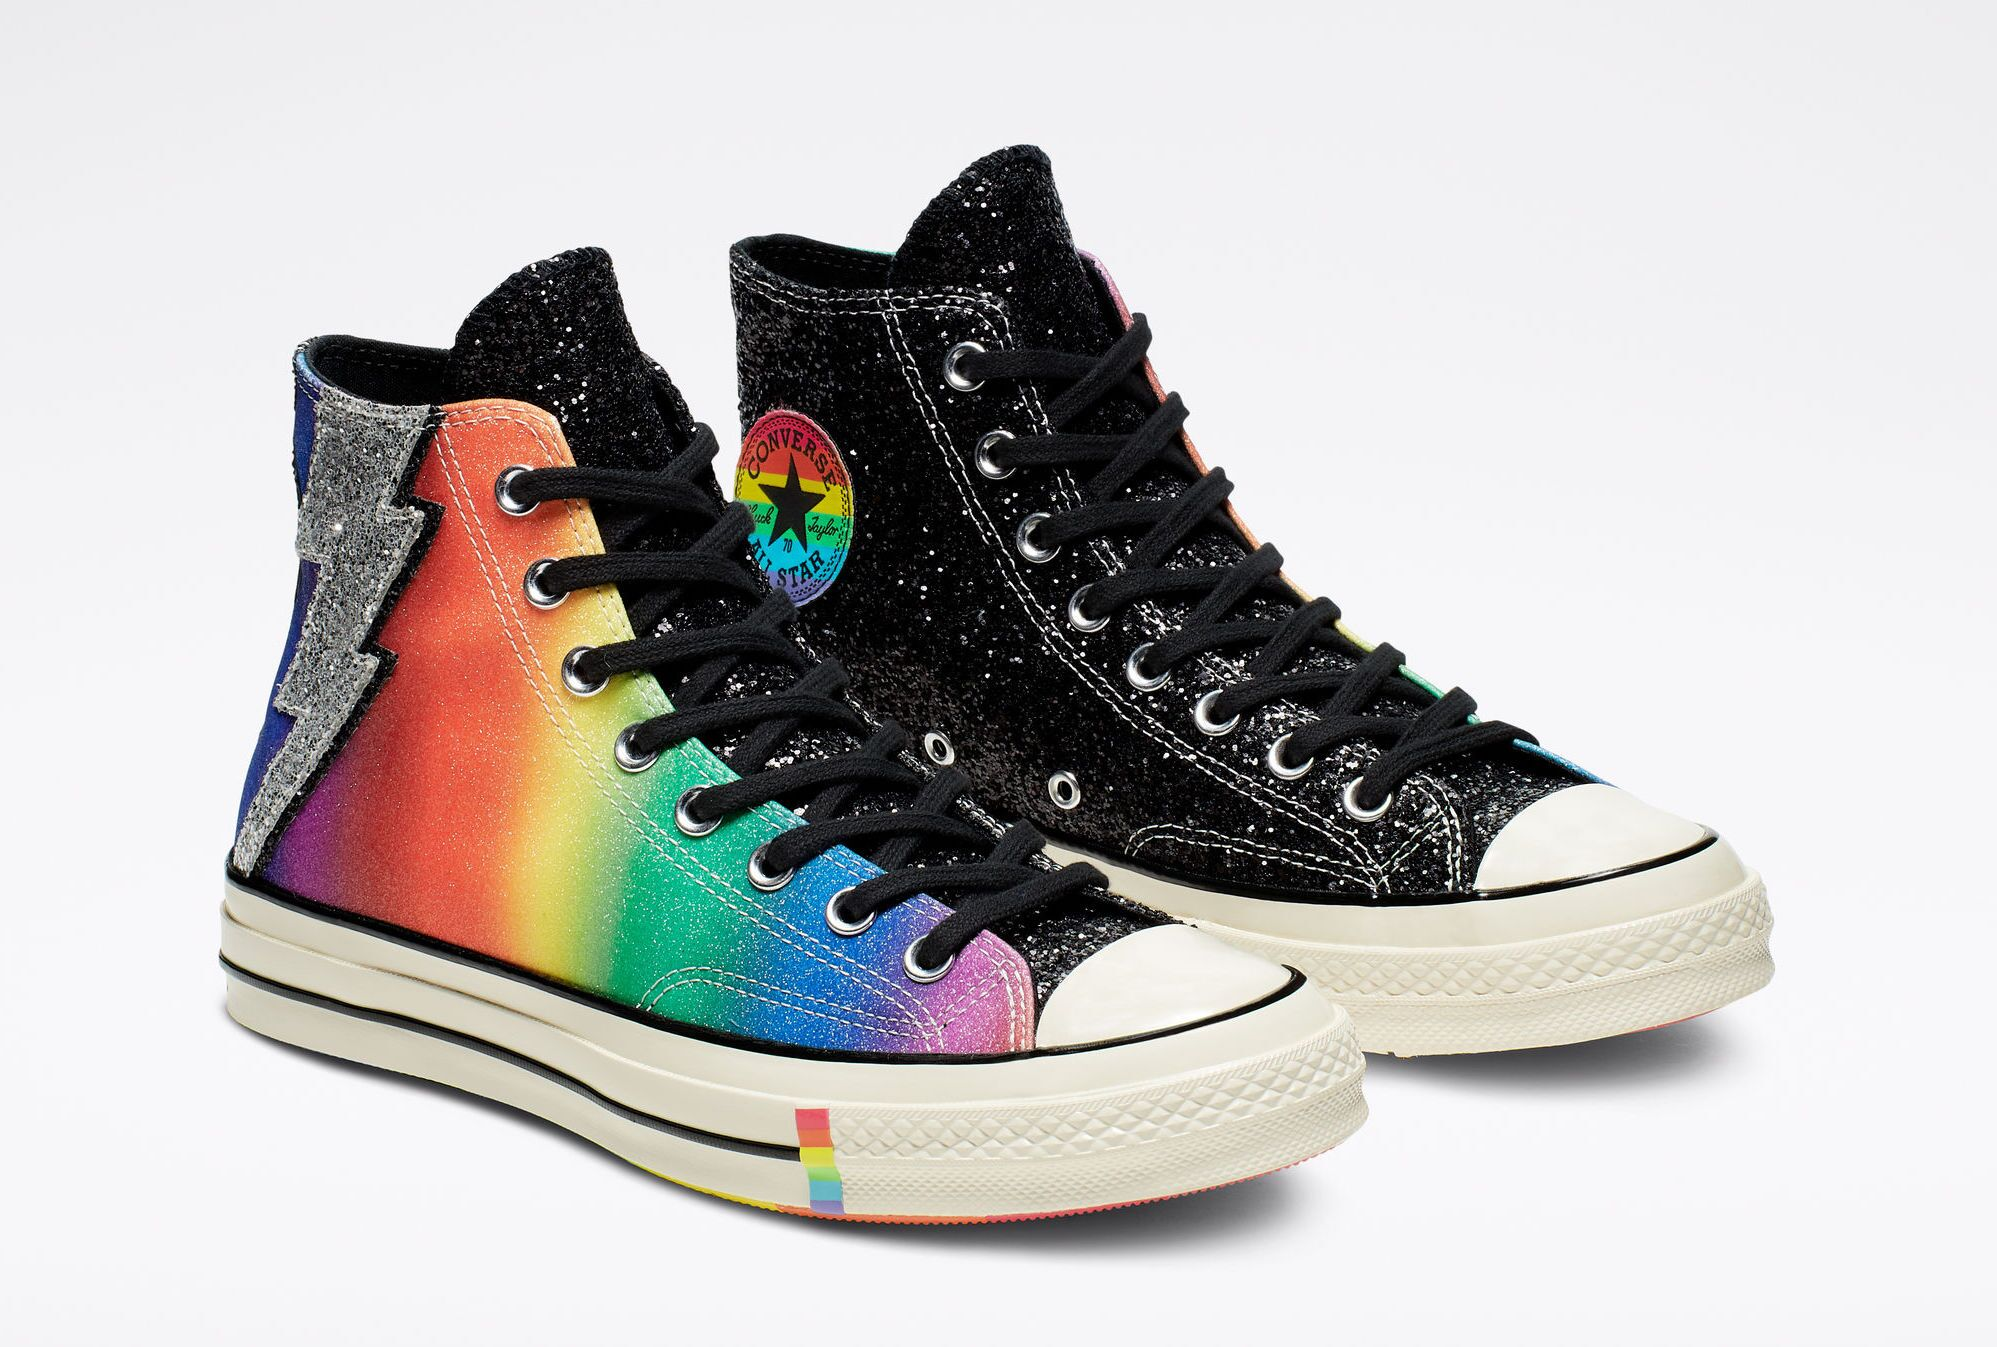 This year's Pride collections are trendy, fun, and affordable